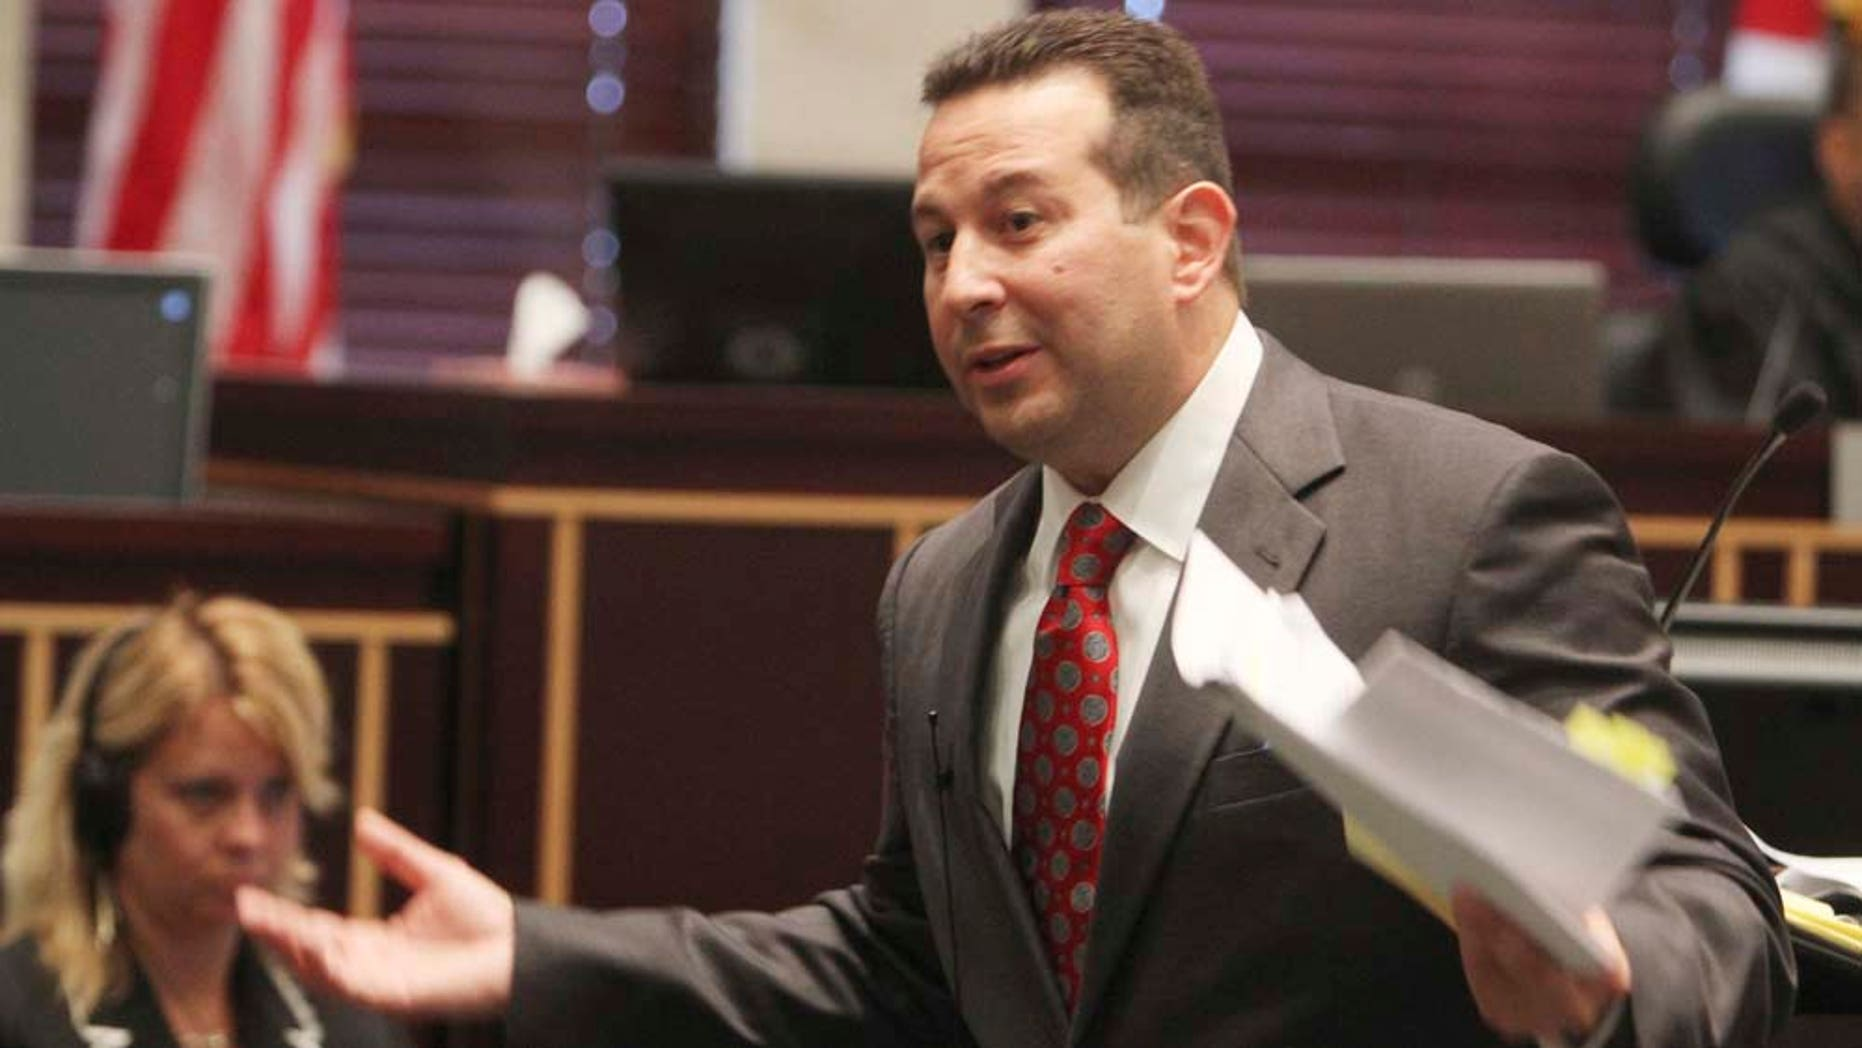 Defense attorney Jose Baez presents closing arguments in the Casey Anthony murder trial at the Orange County Courthouse in Orlando, Fla.,Sunday, July 3. Anthony, who faced the death penalty, was found not guilty of killing her daughter.